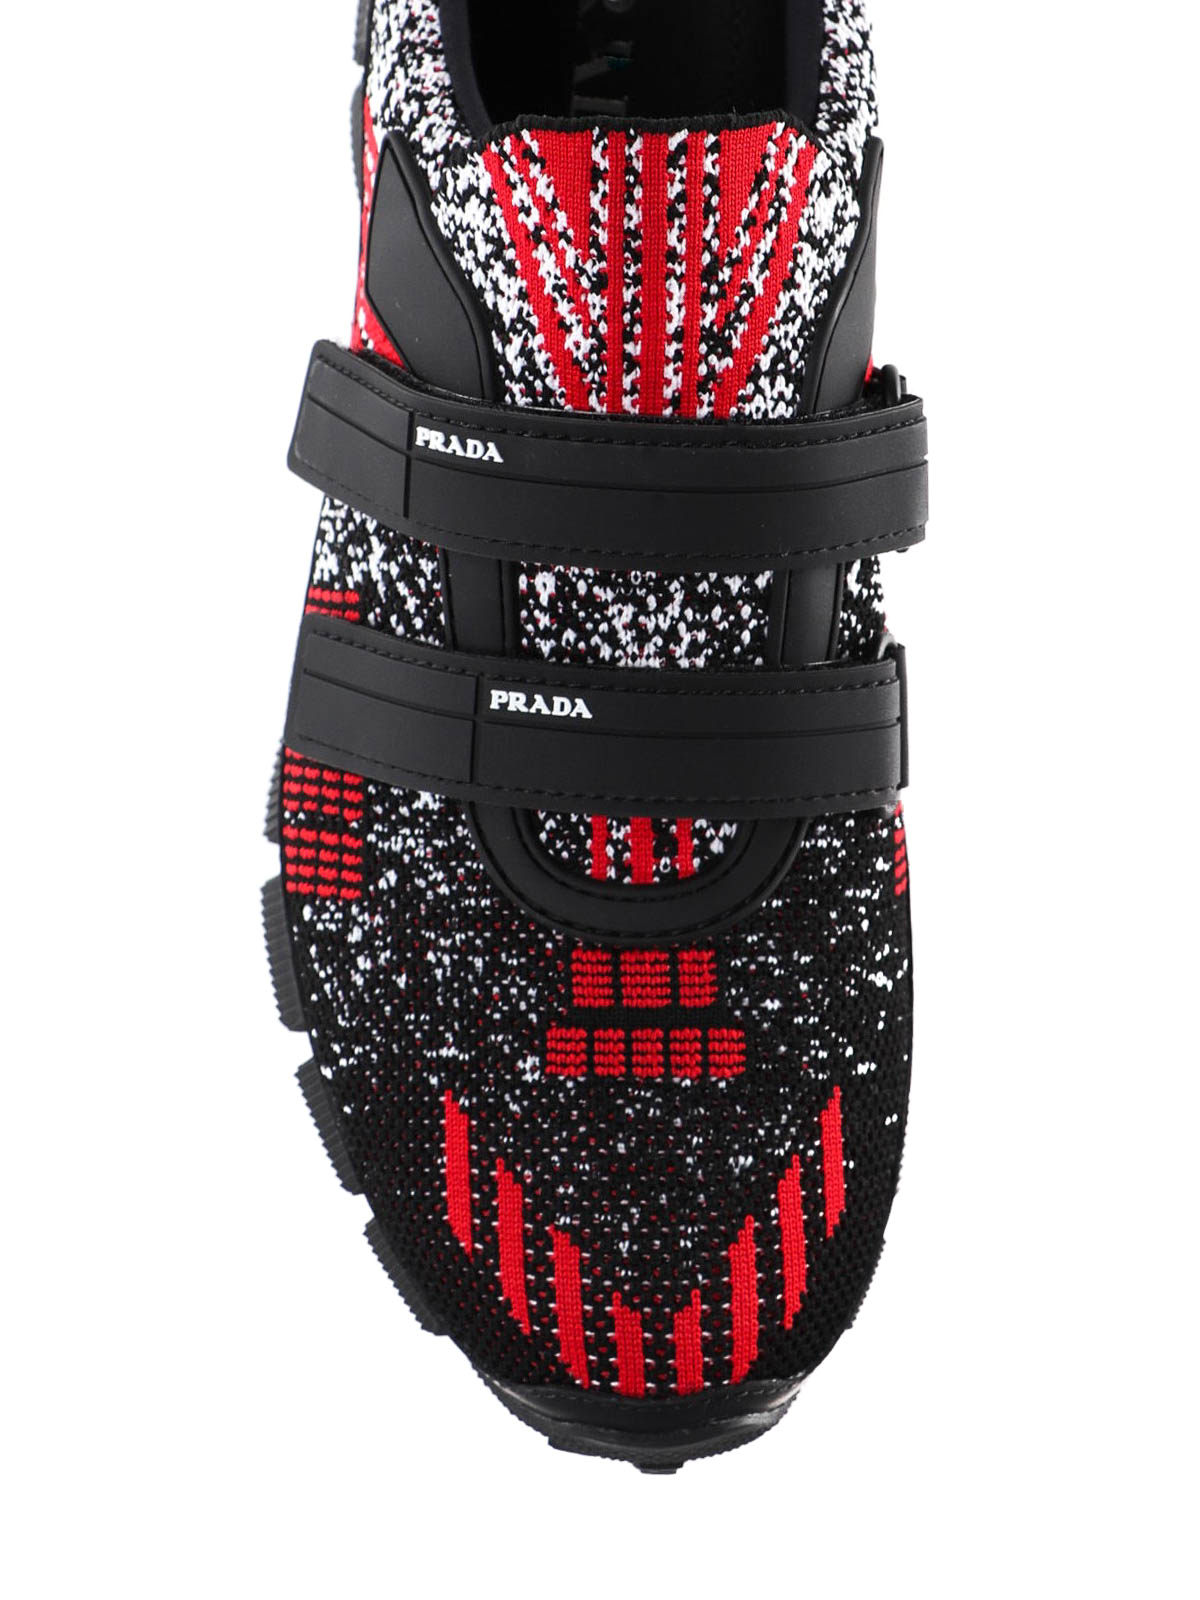 Prada - Crossection knit black and red